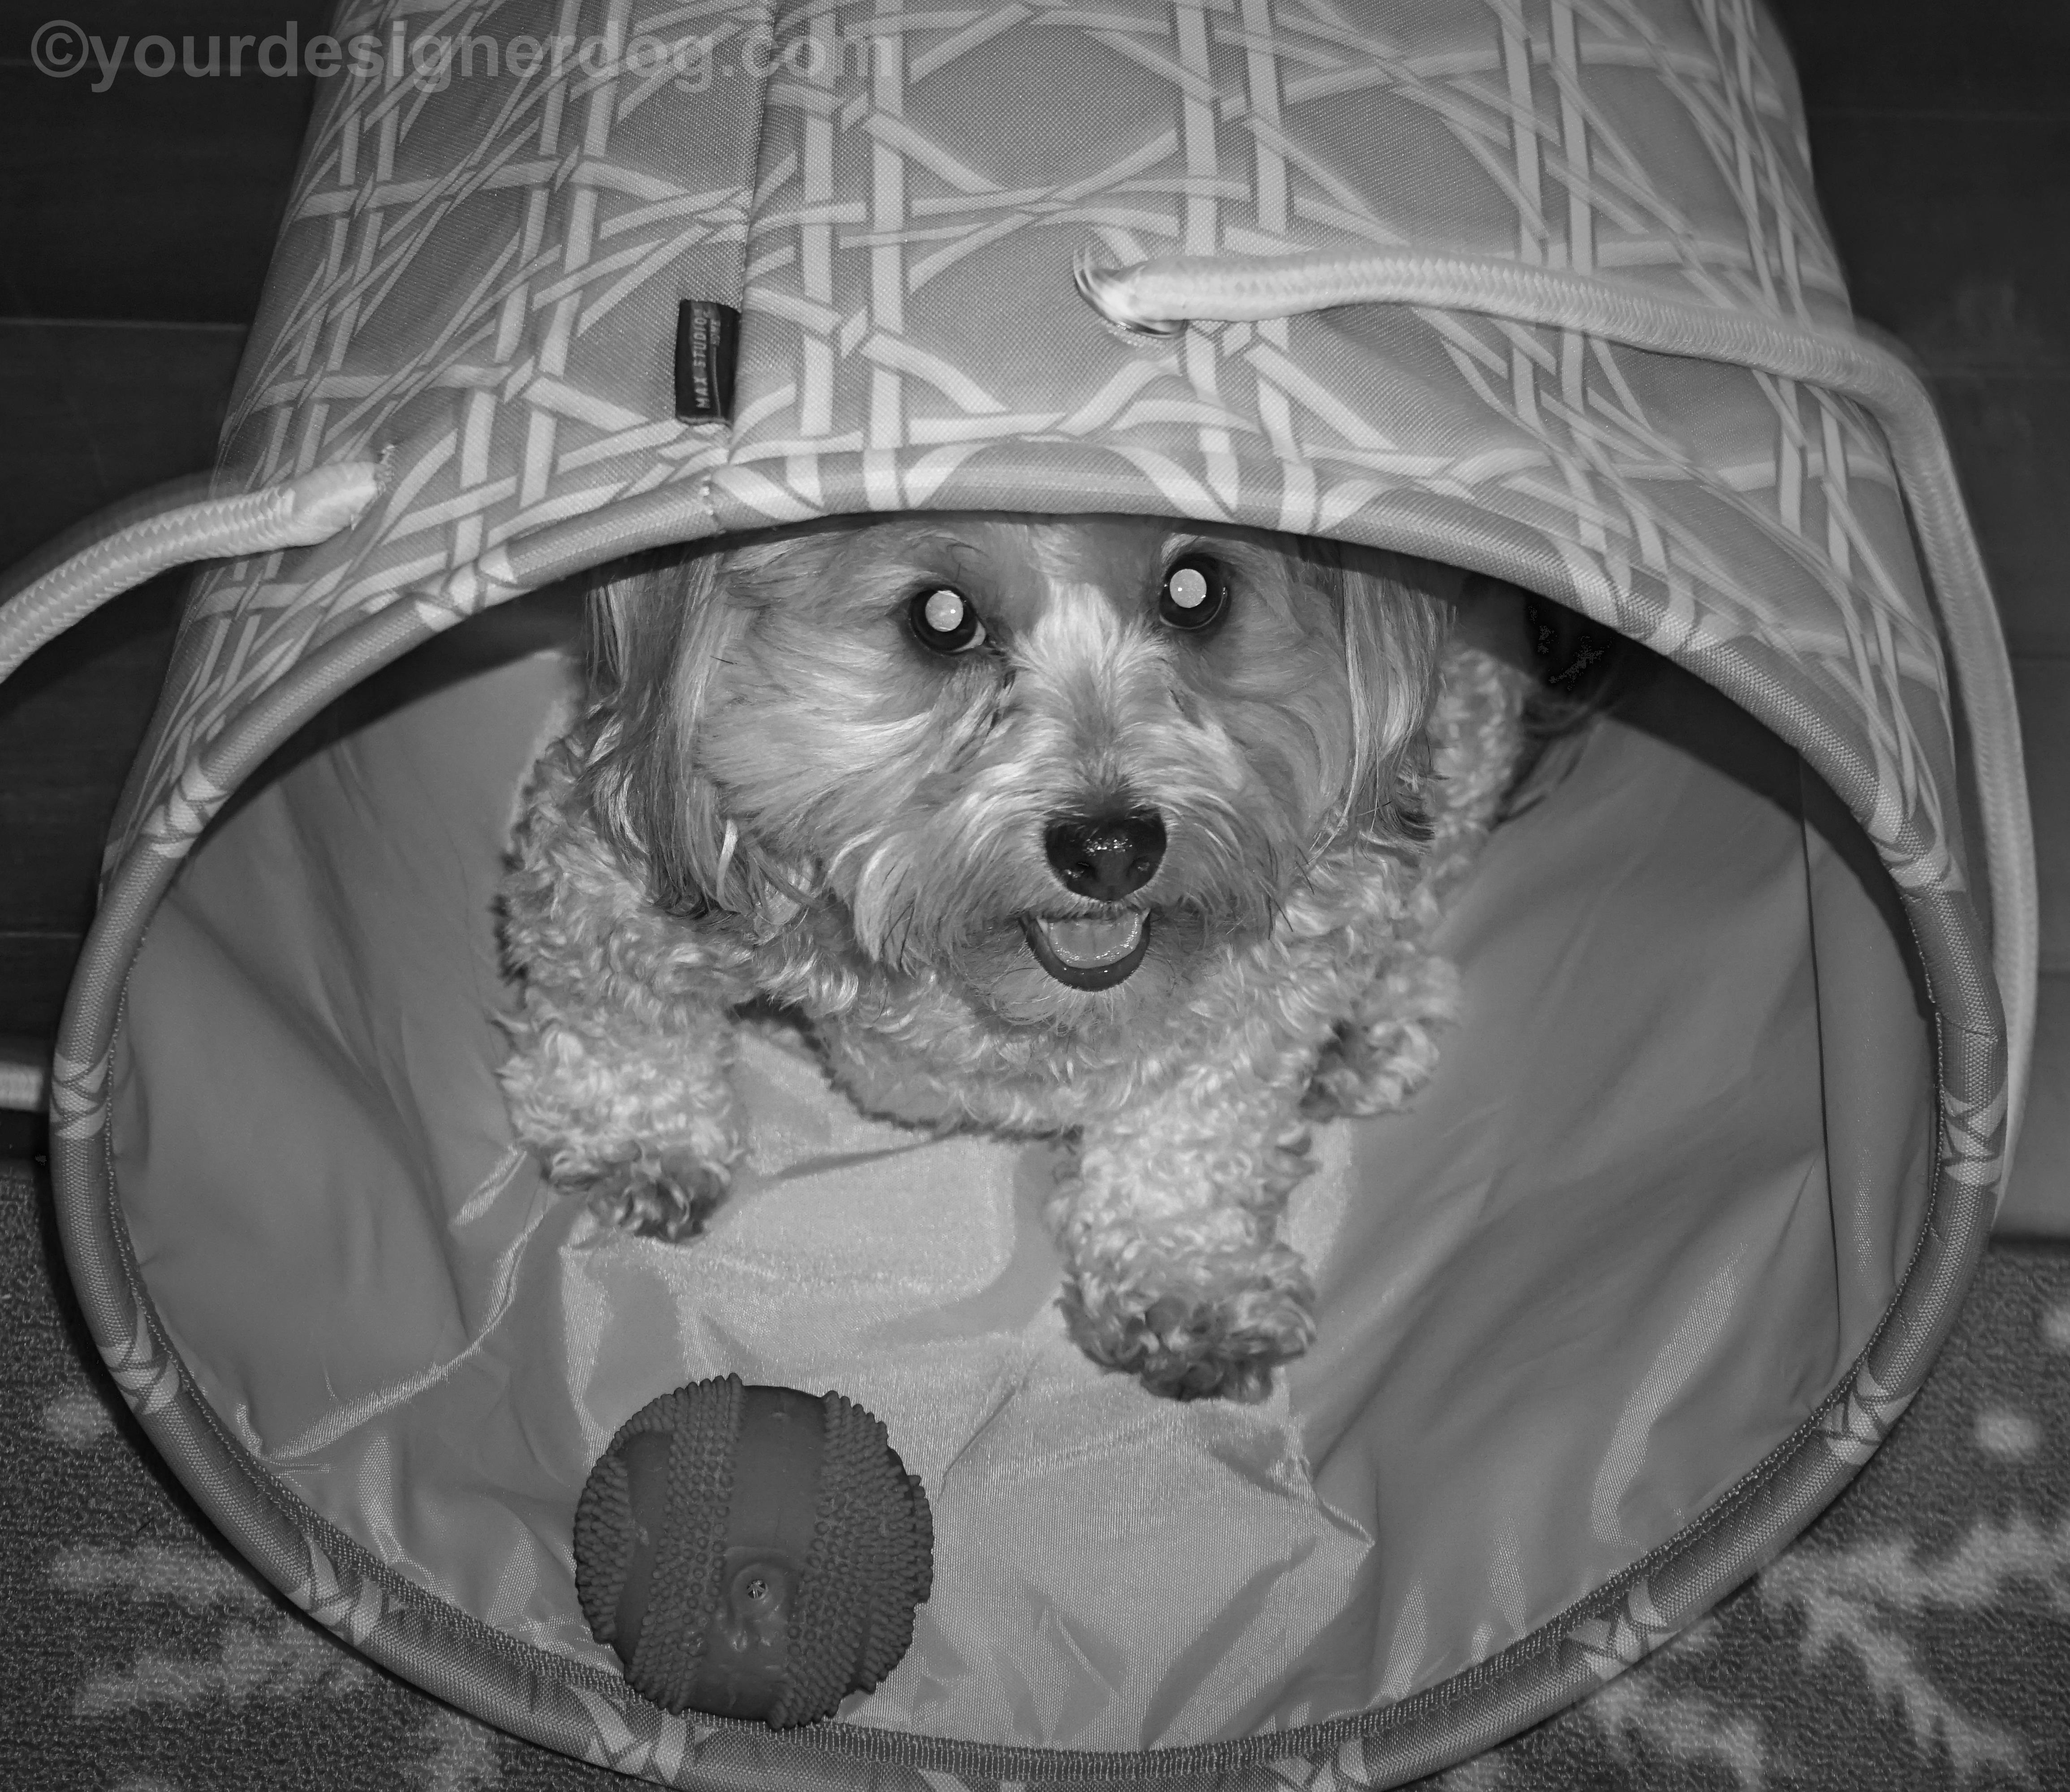 Black and White and in a Basket